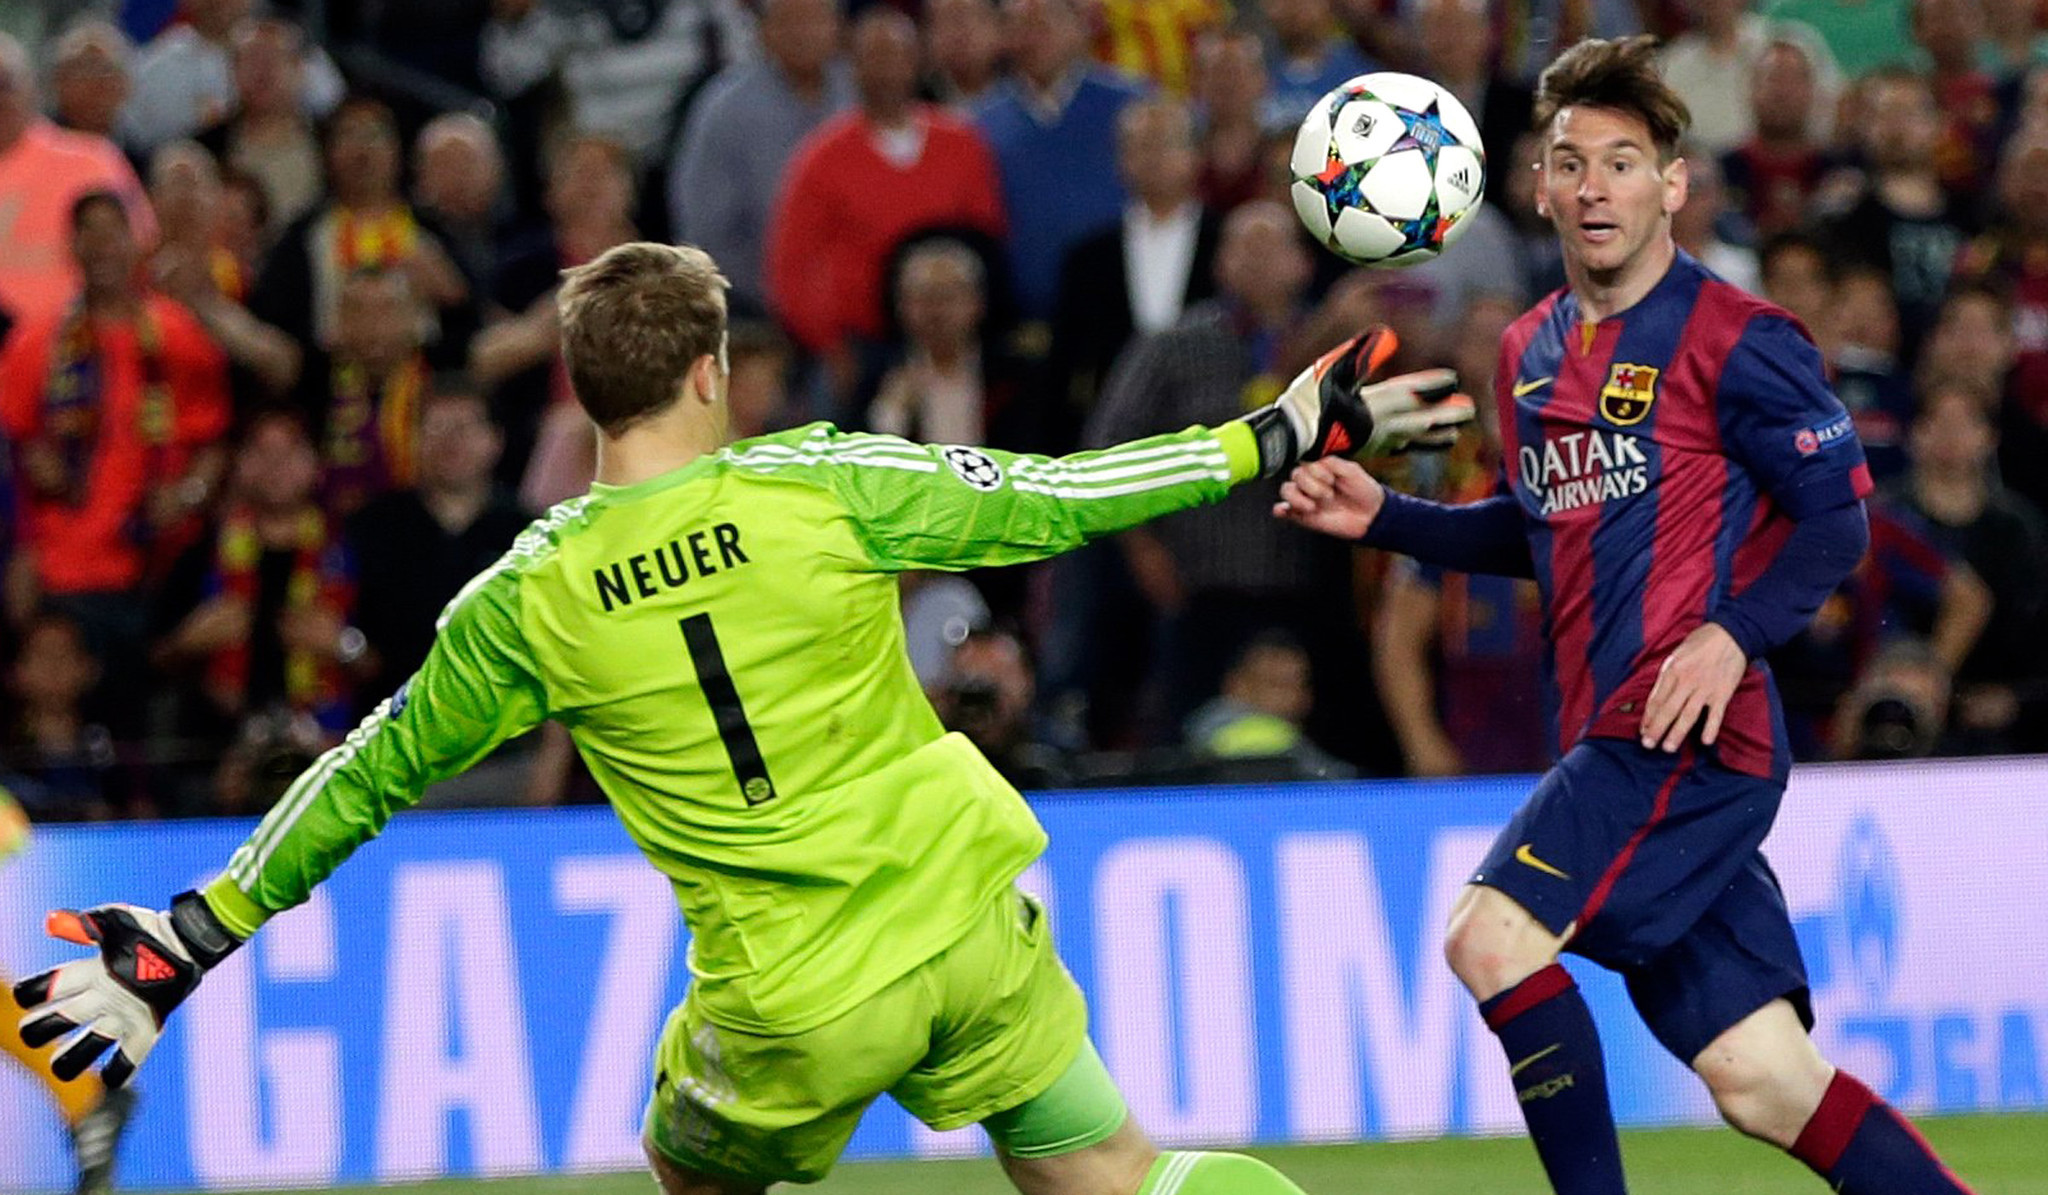 Watch Lionel Messi score two amazing goals vs. Bayern ...